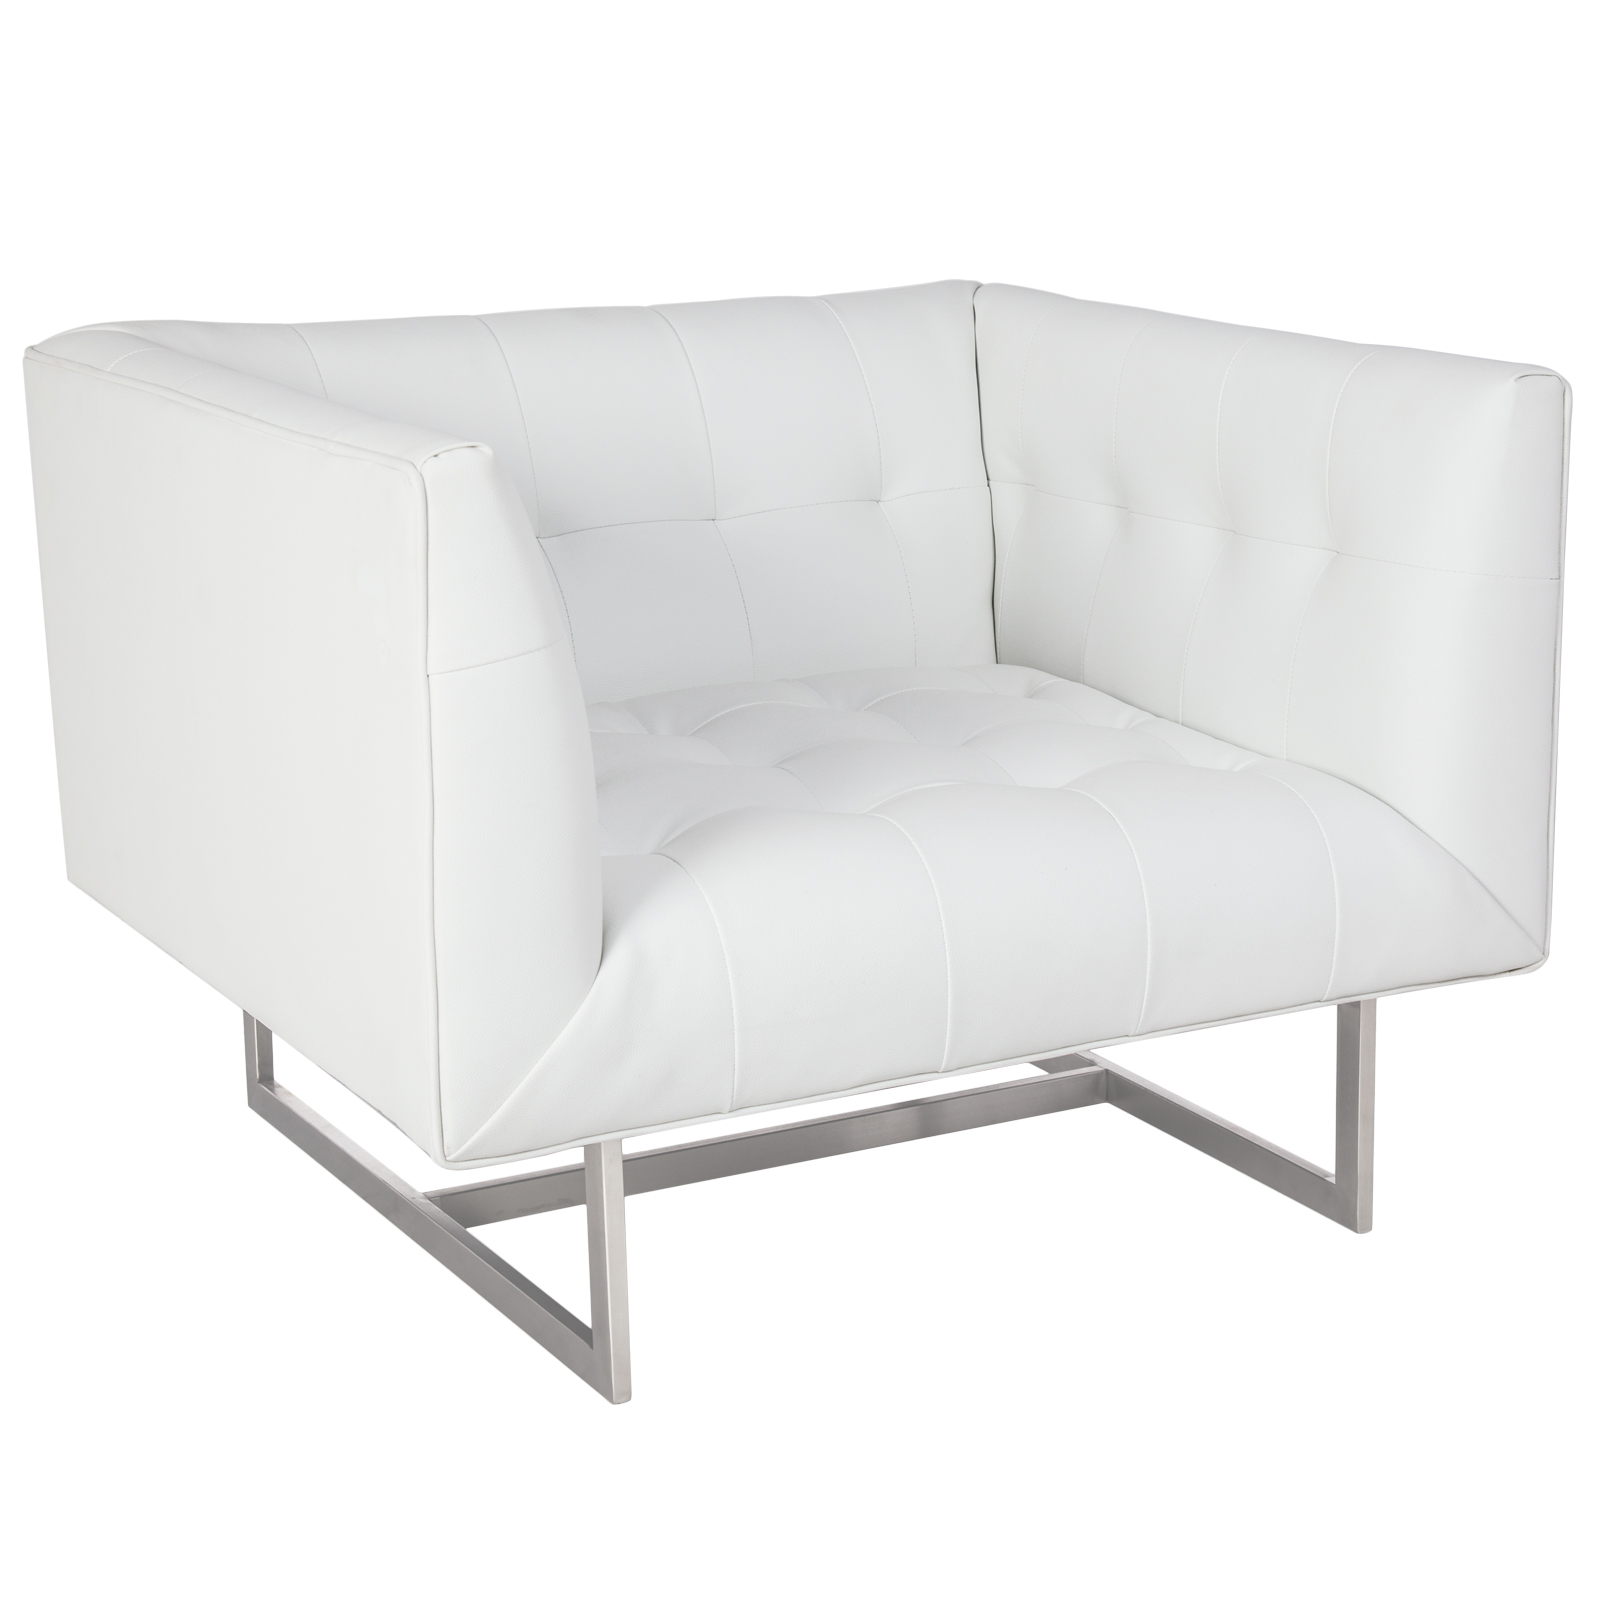 Pleasing Edward Lounge Chair Rentals Event Furniture Rental Download Free Architecture Designs Scobabritishbridgeorg